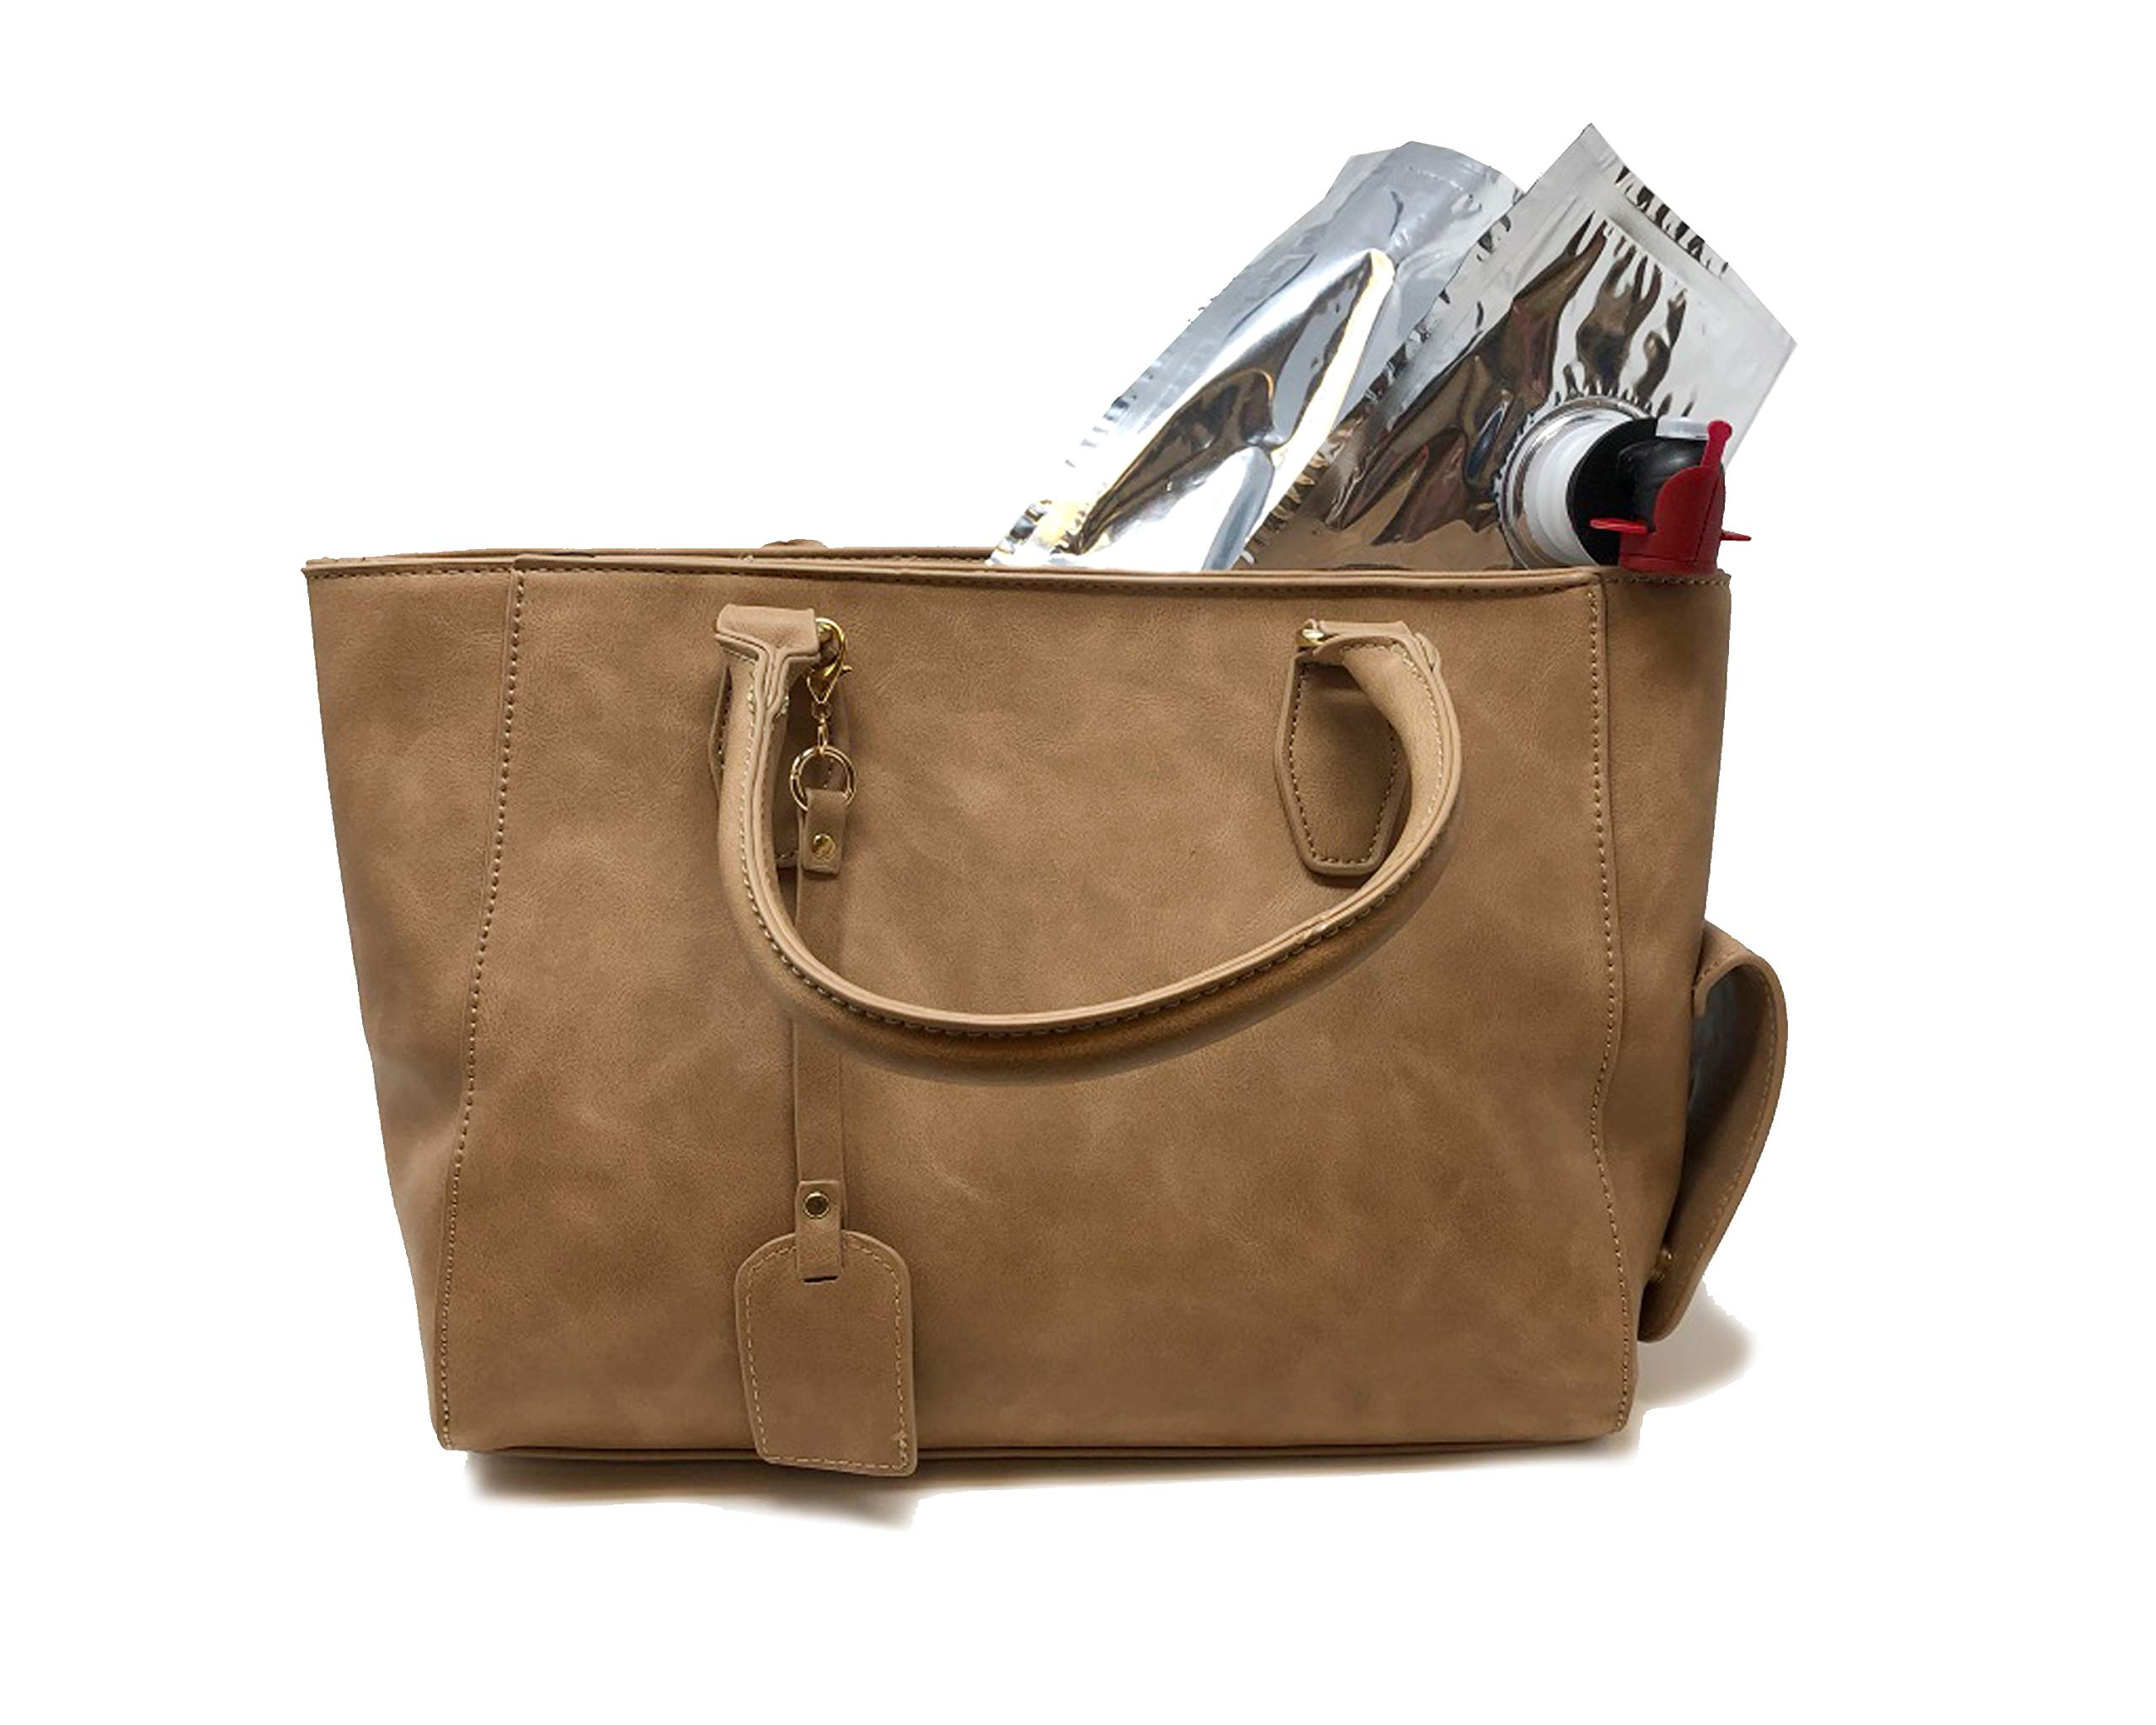 Premium Leather Wine Purse For Women | Women's 3-Liter Insulated Handbag For Drinks, Beer & Cocktails | Drink Cooler Tote Dispenser With Spout | Leak-Proof & Stylish Bladder Bag With Cocktails BROWN by 1 PARK AVENUE